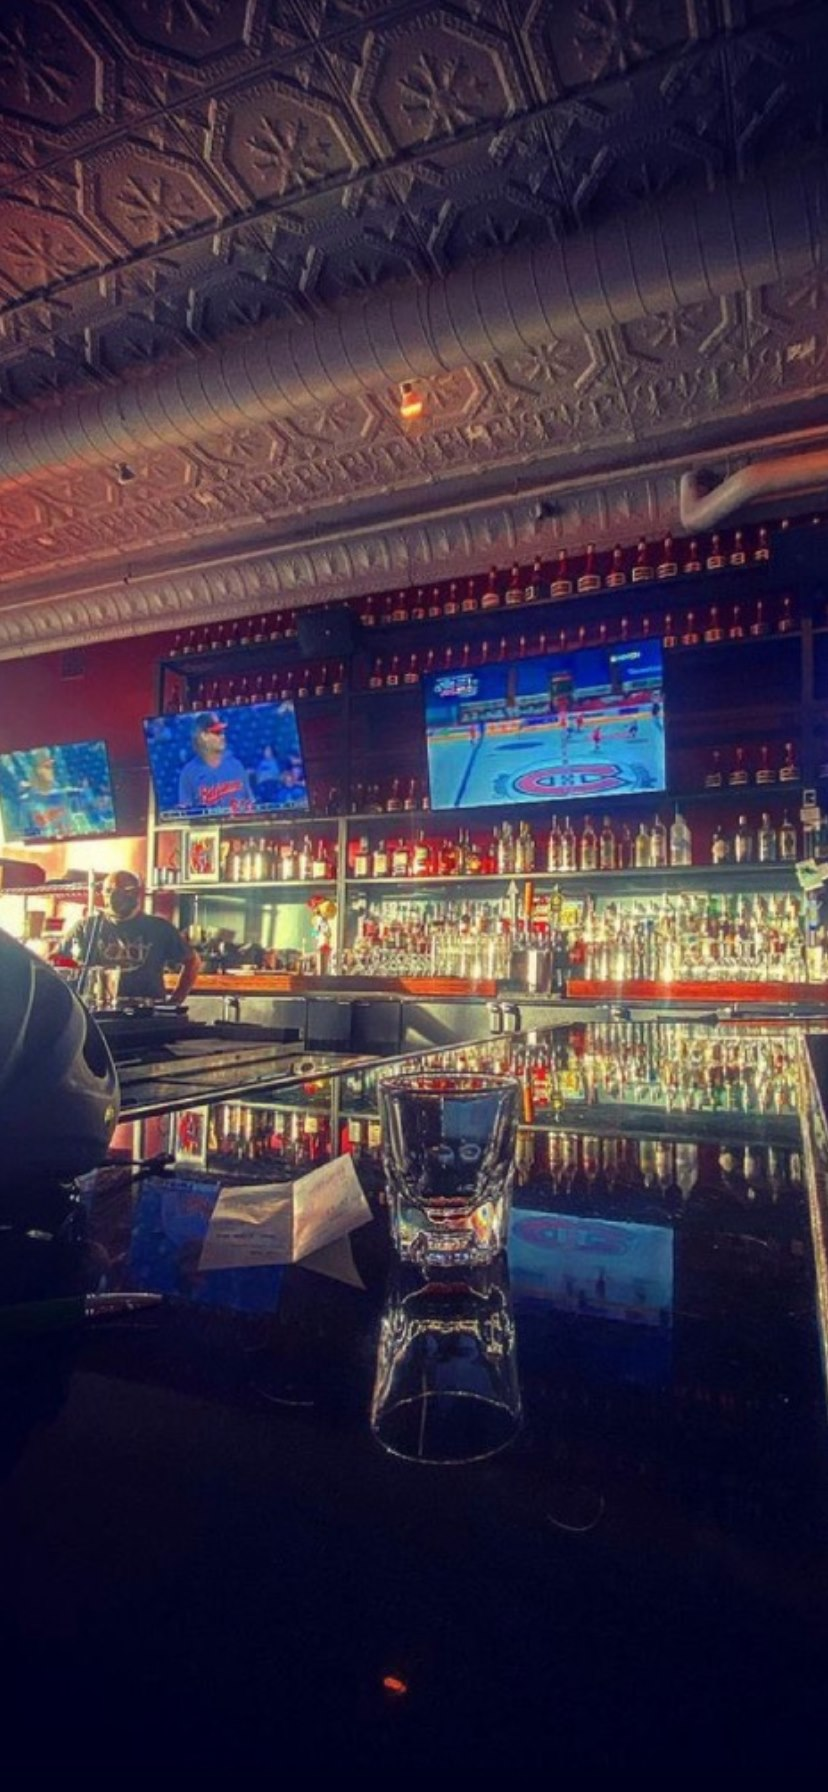 glass on bar counter with bartender and sports game on televisions